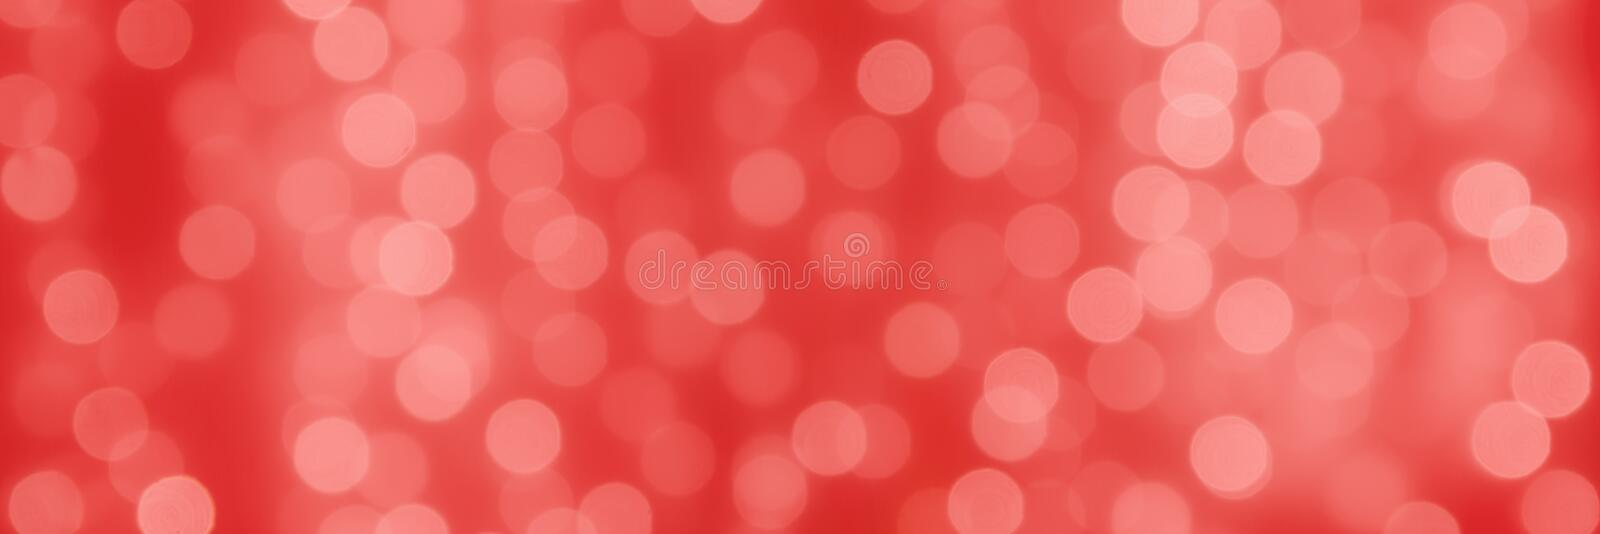 Abstact holiday coral background with bokeh light balls.  stock photo